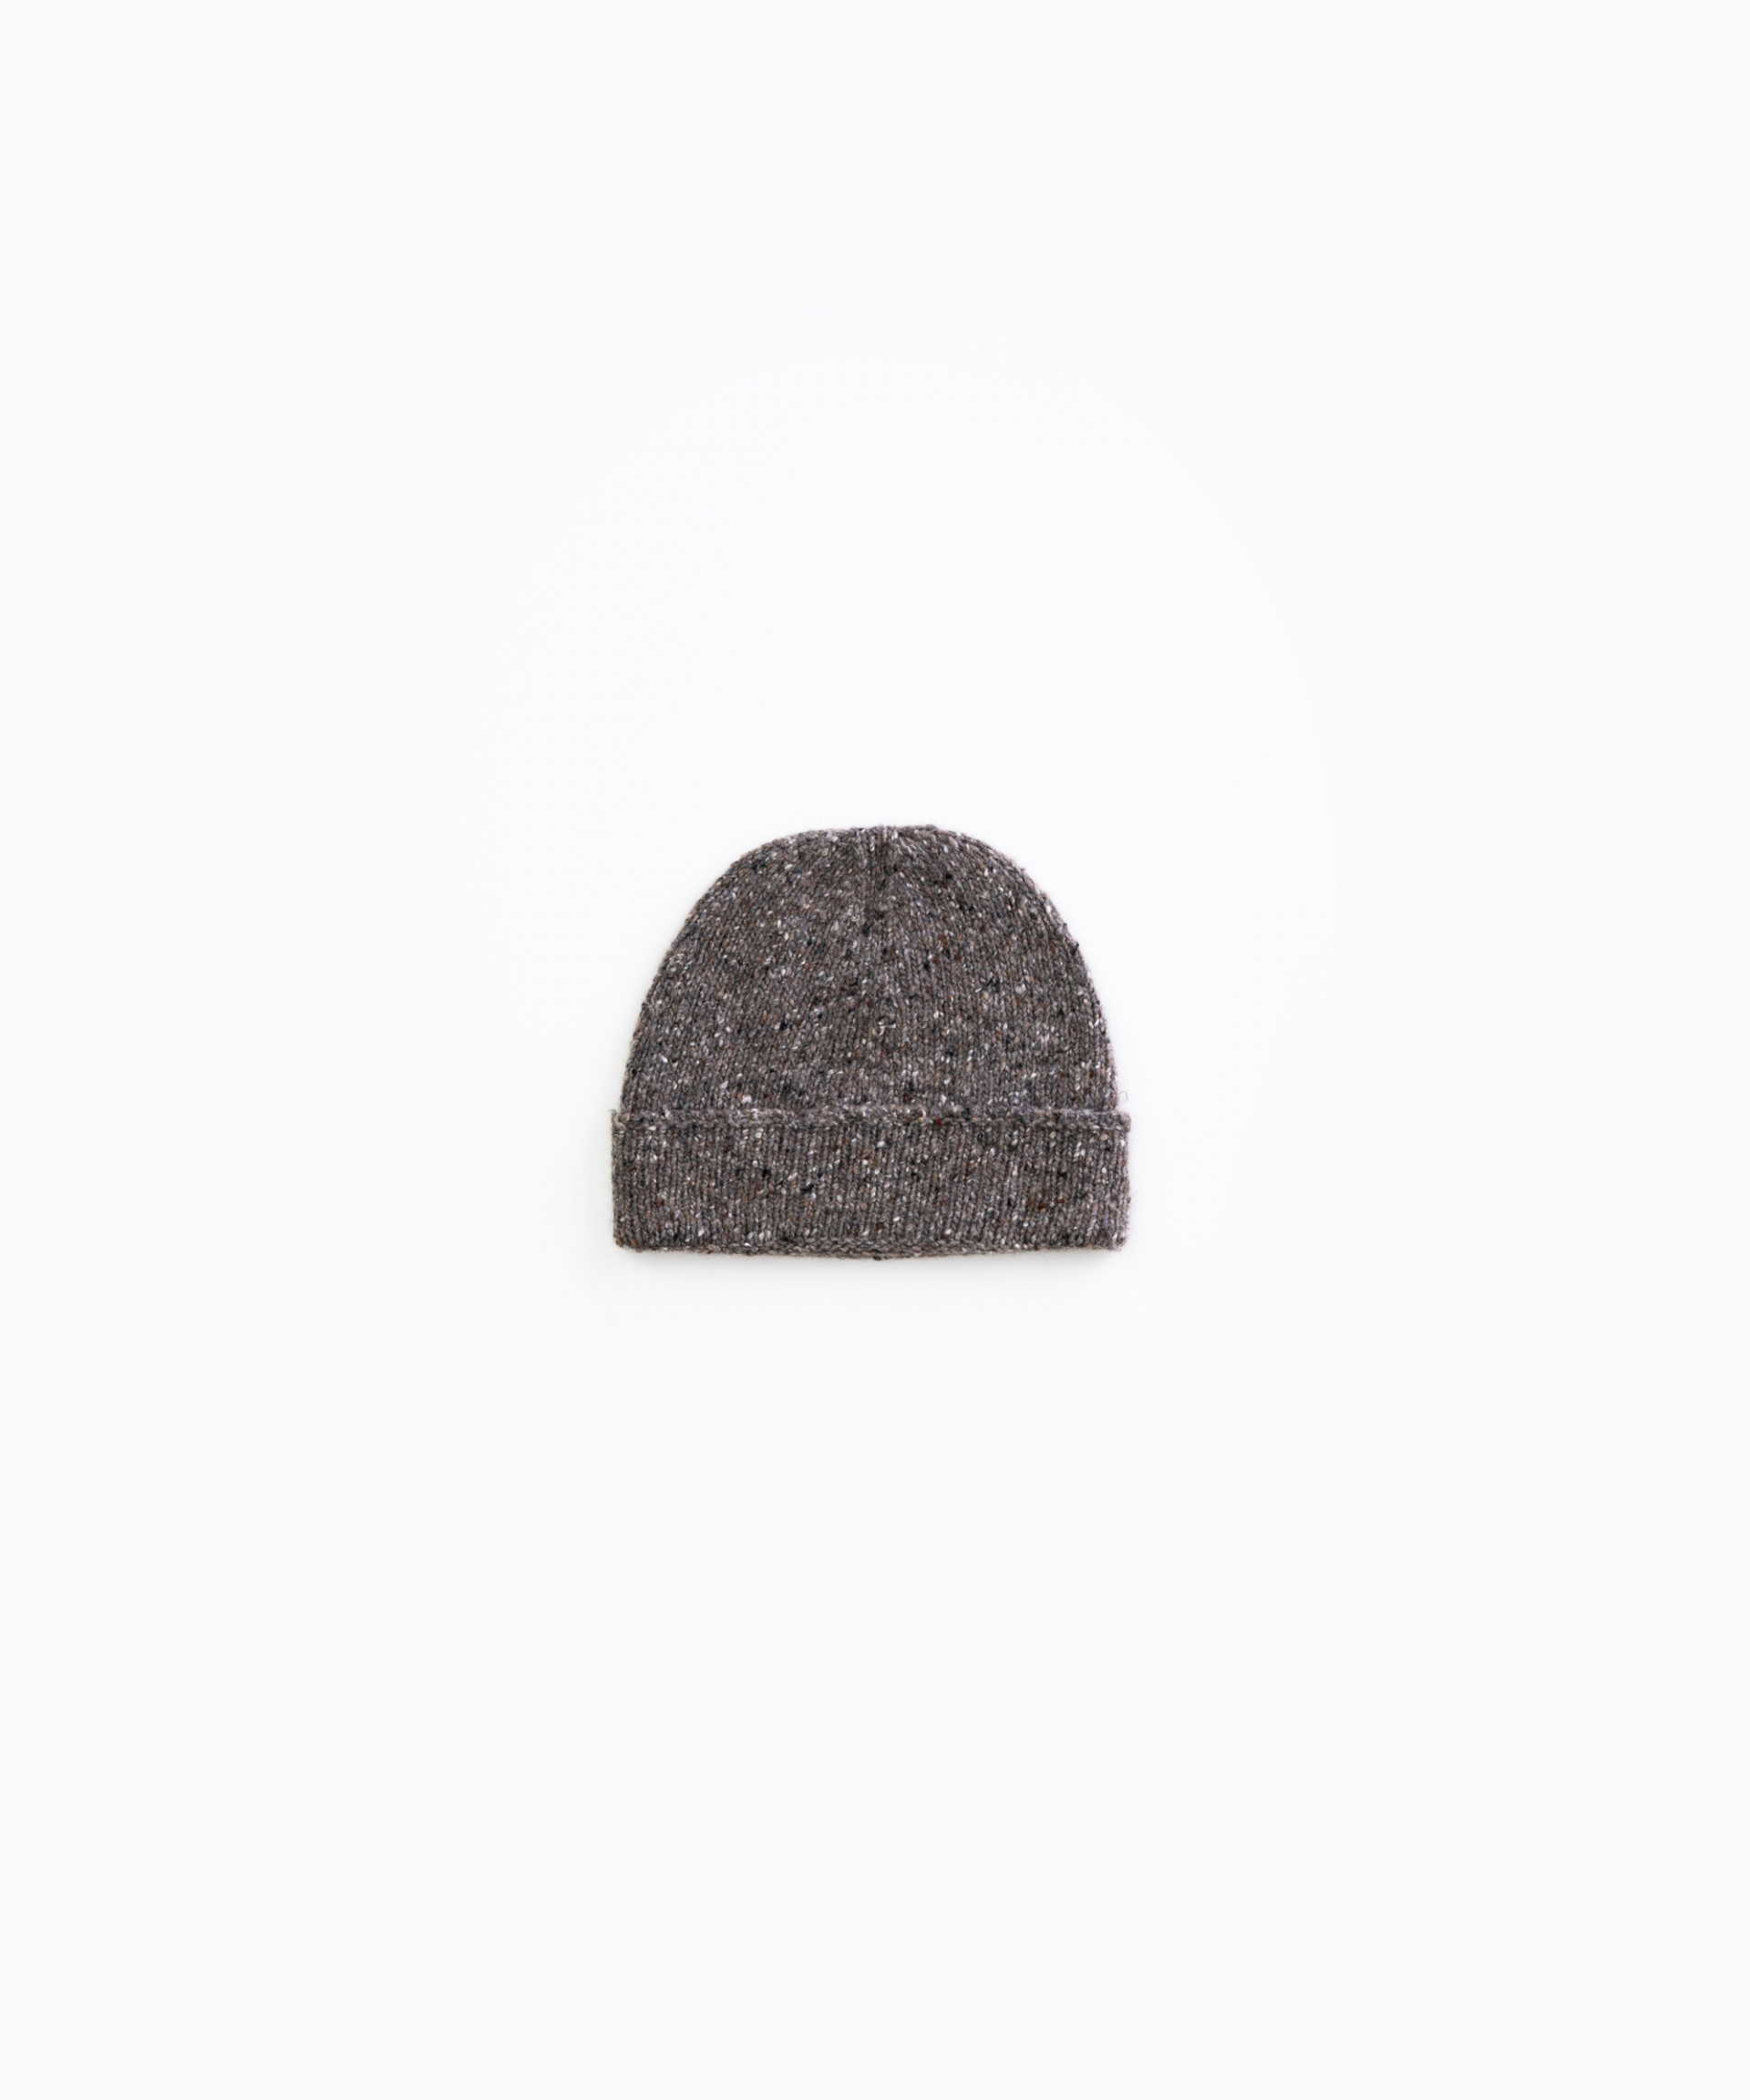 Gorro tricot | Woodwork